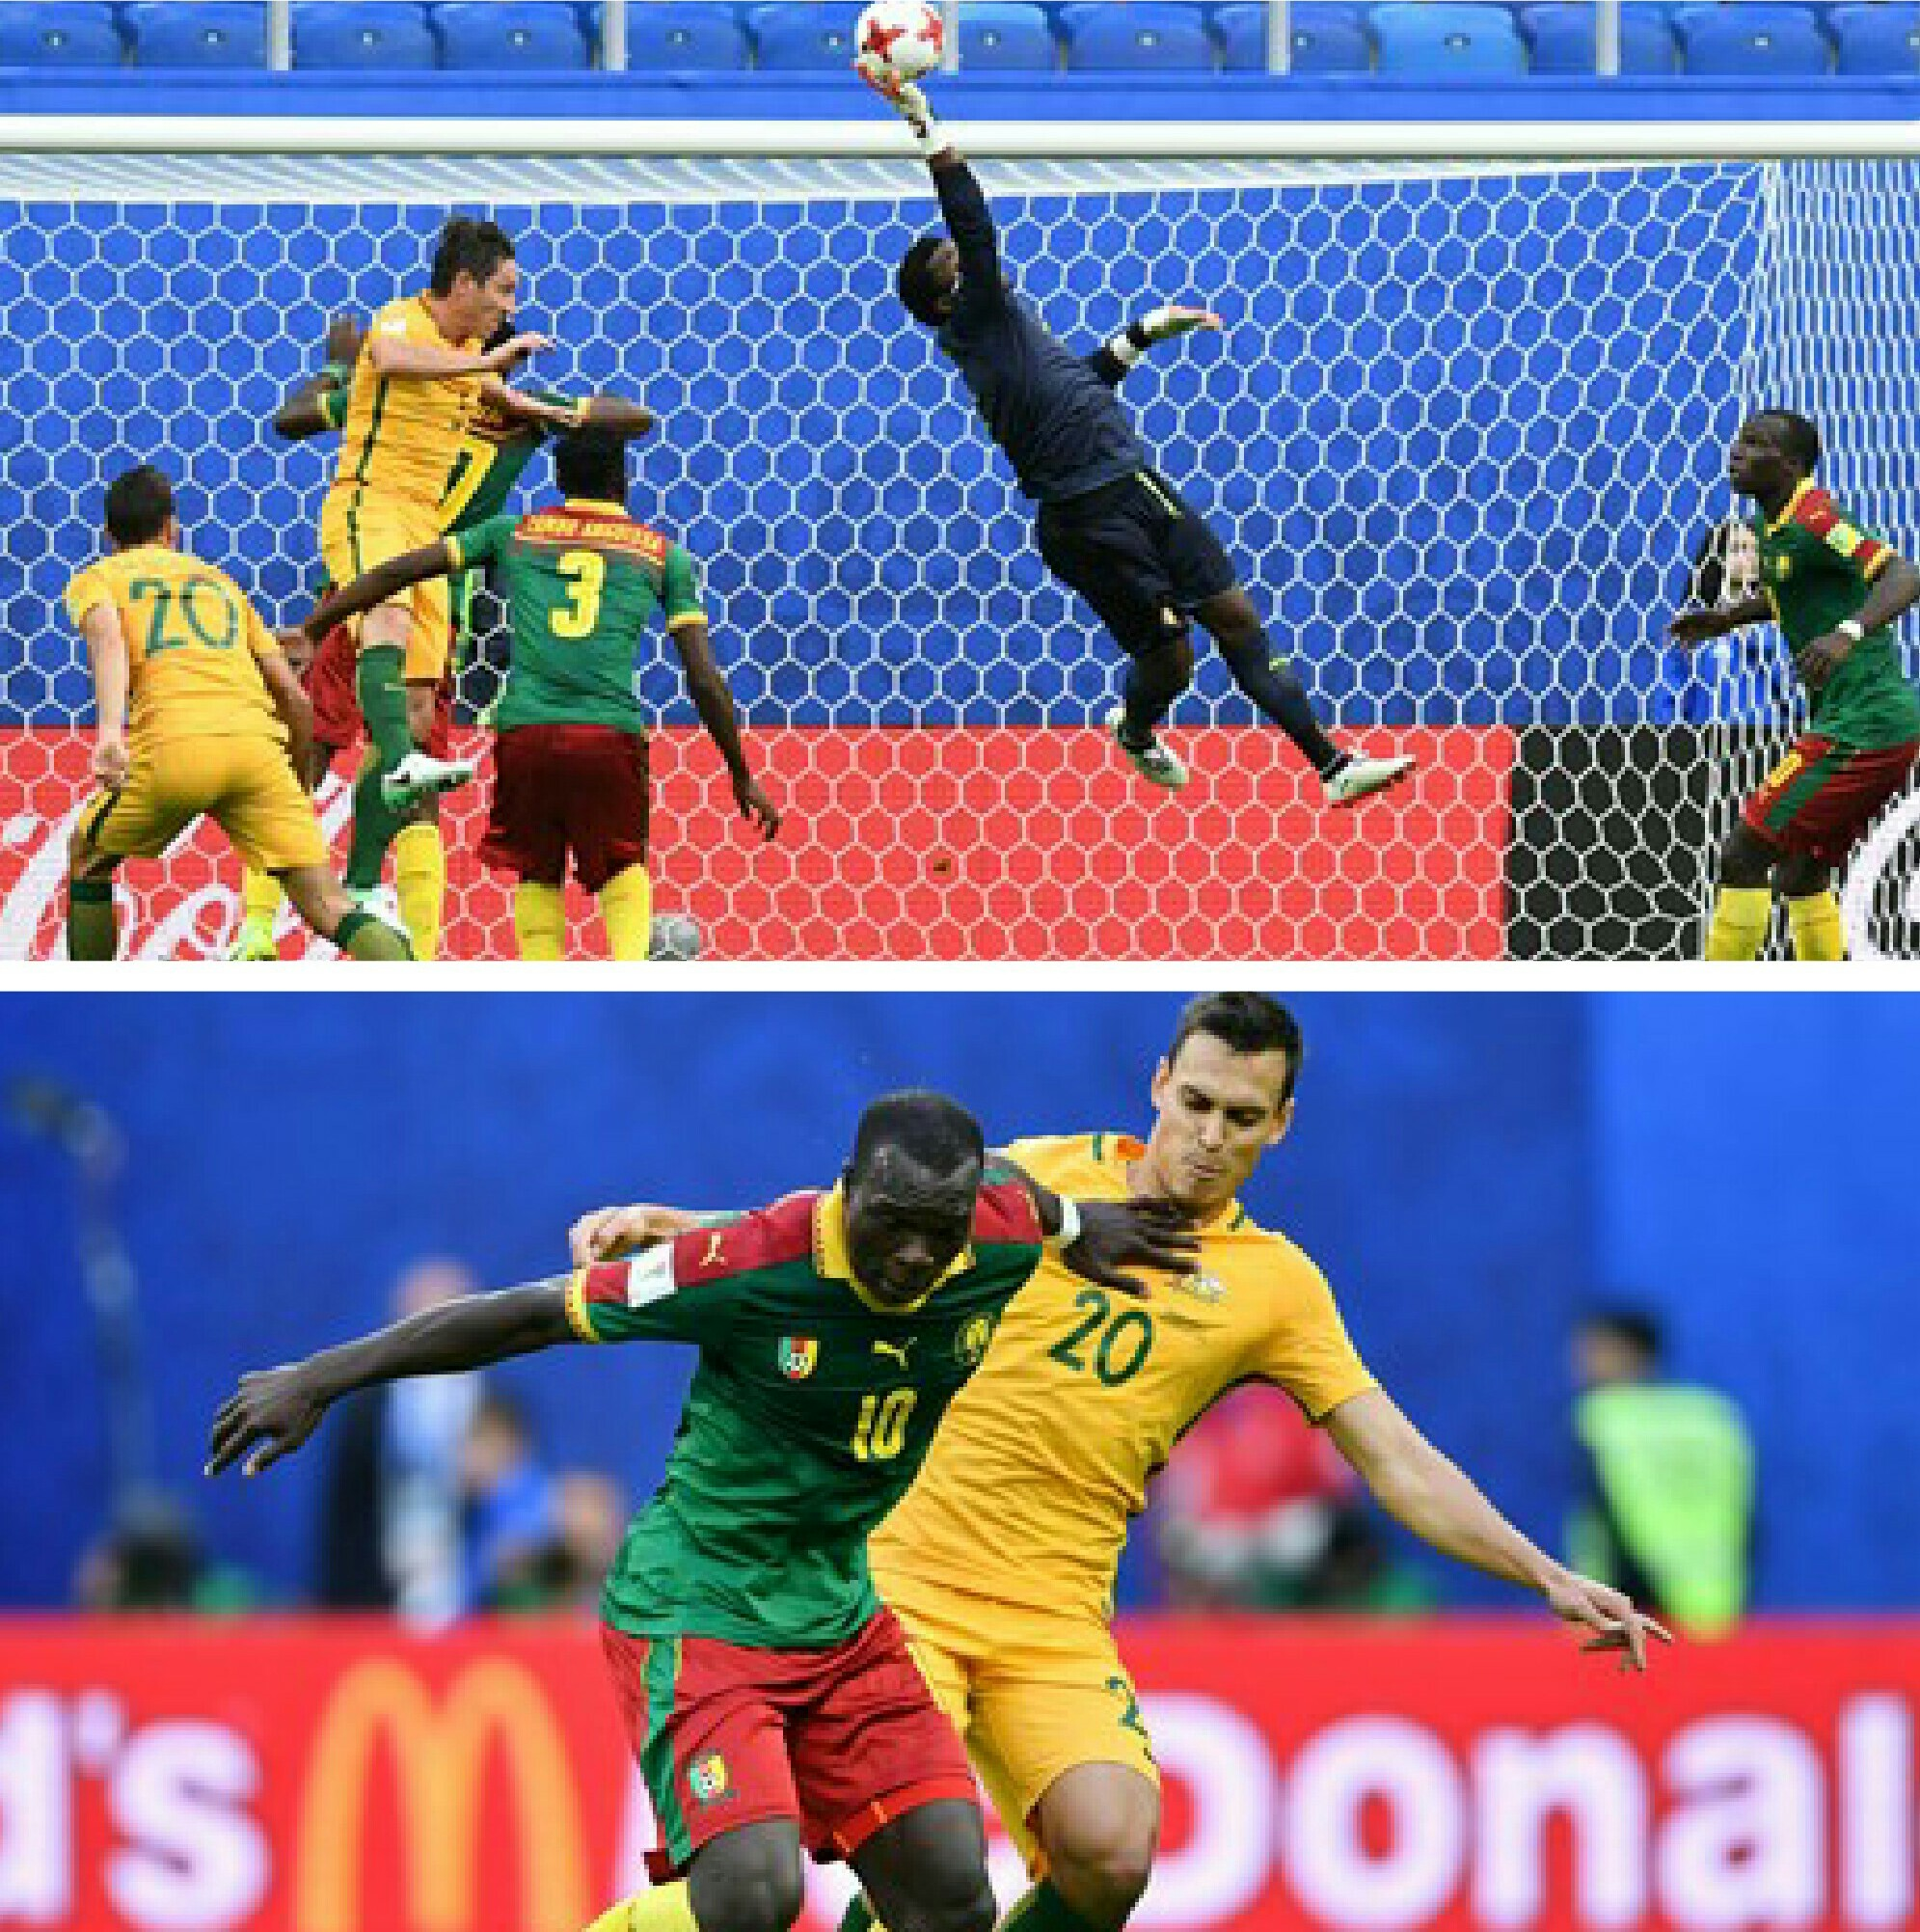 Confed. Cup: Cameroon, Australia Share The Spoils In 1-1 Draw